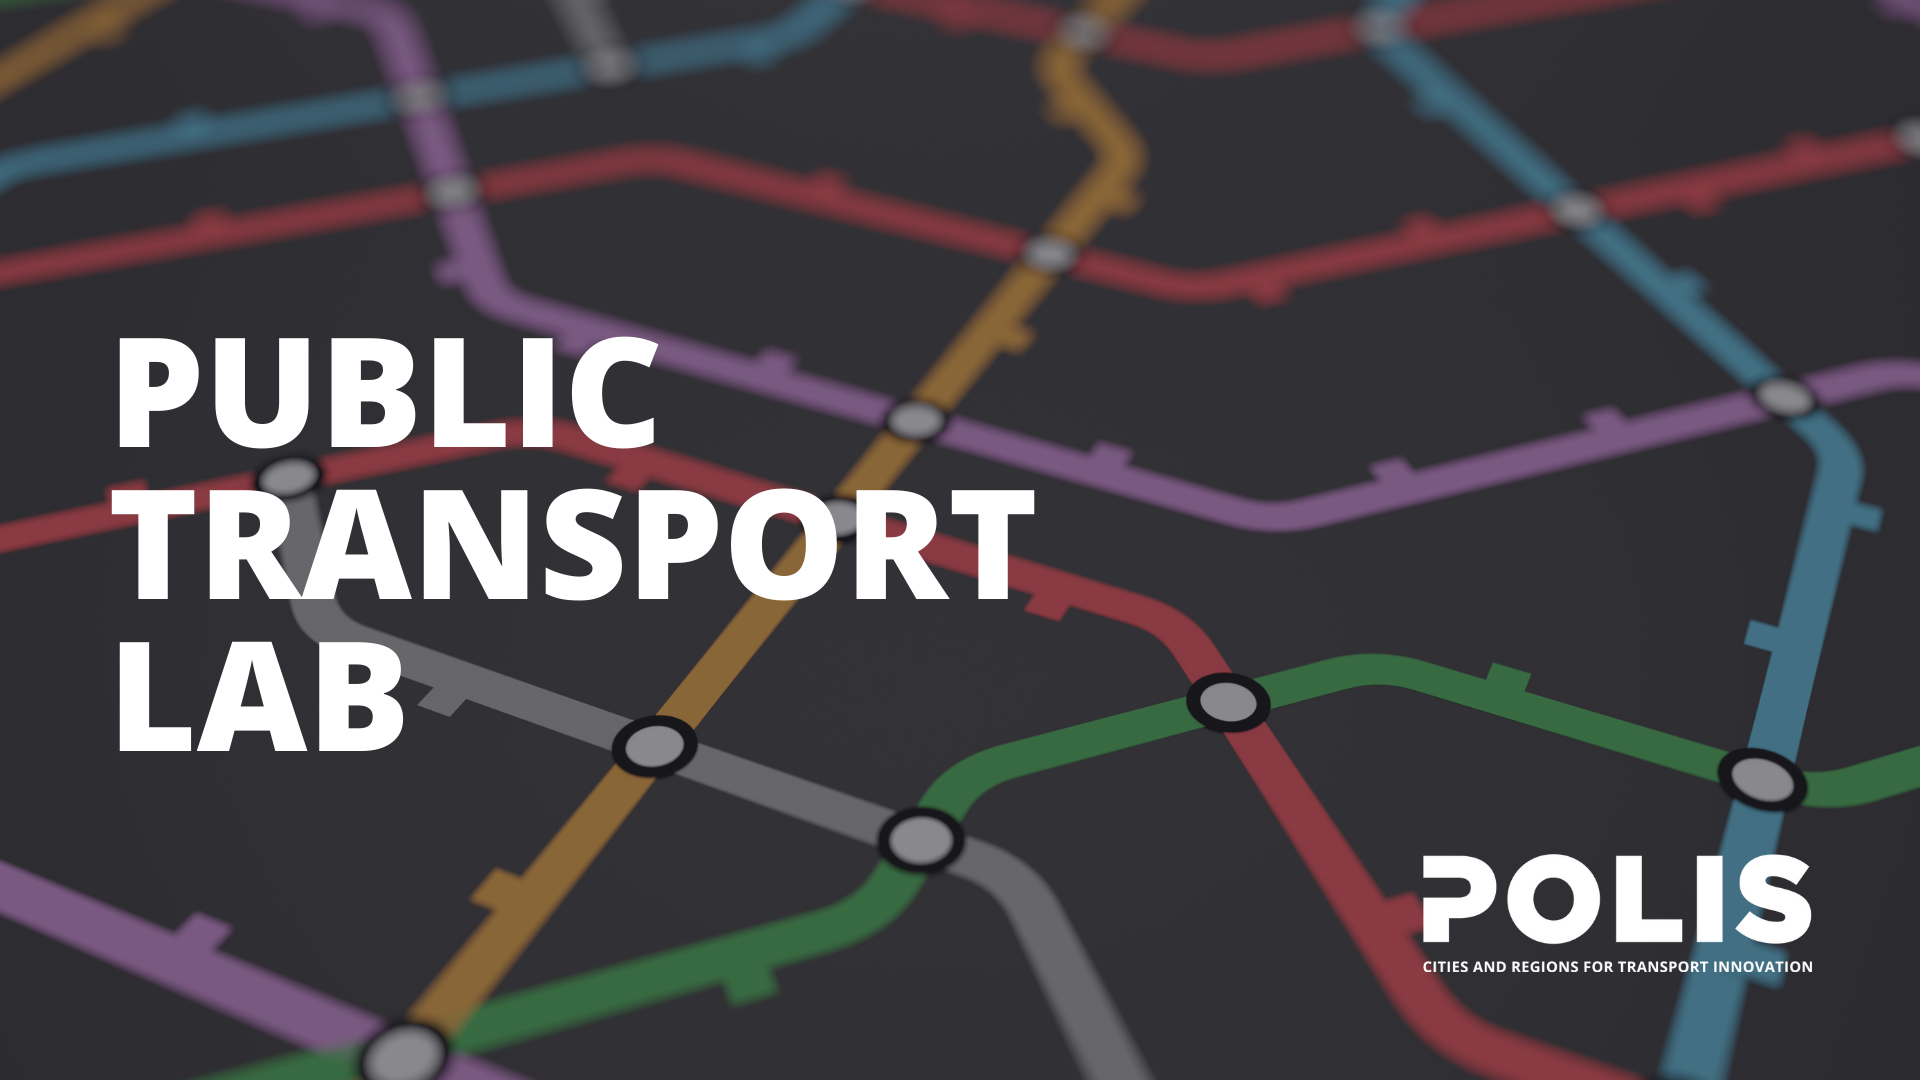 POLIS launches the Public Transport Lab, a webinar series on the future of public transport